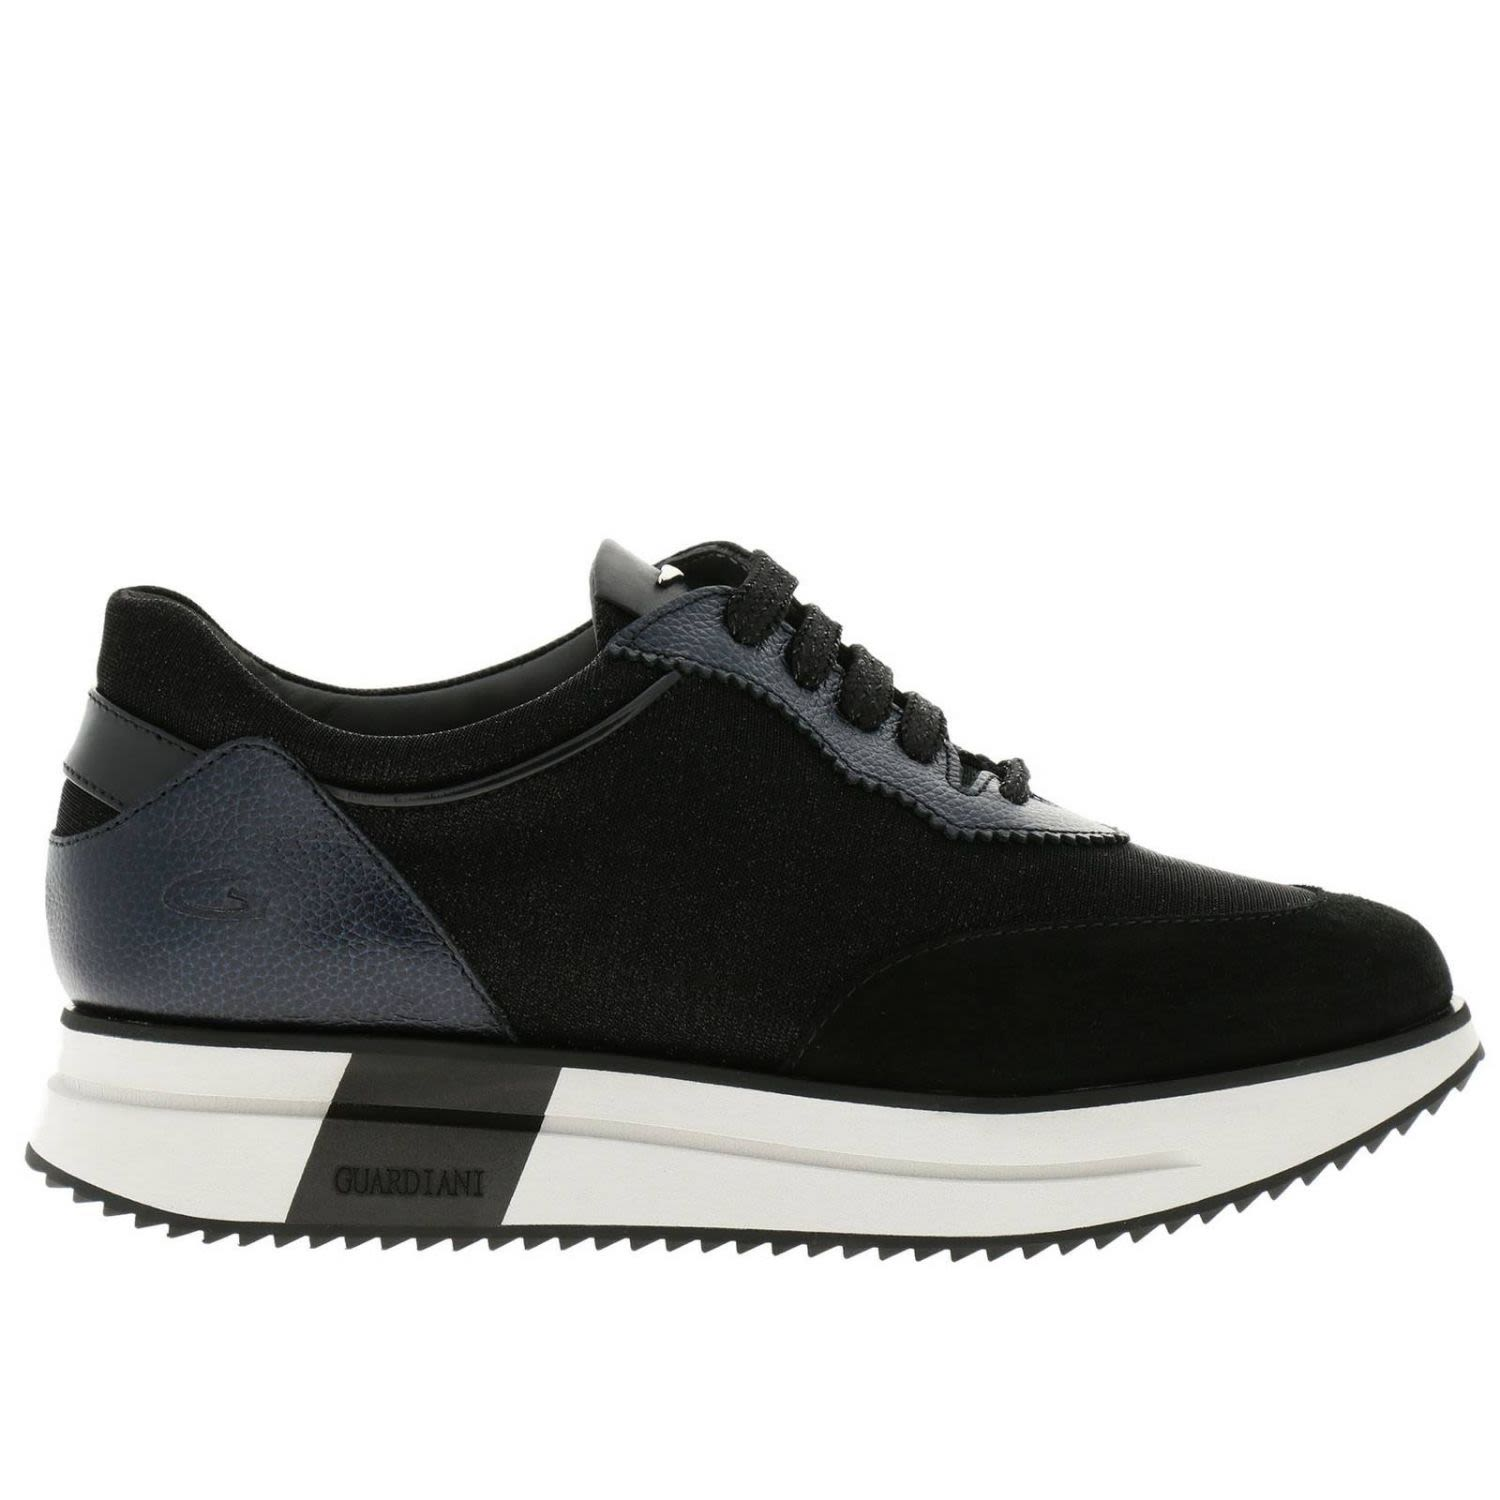 ALBERTO GUARDIANI Guardiani Sneakers Shoes Women Guardiani in Black